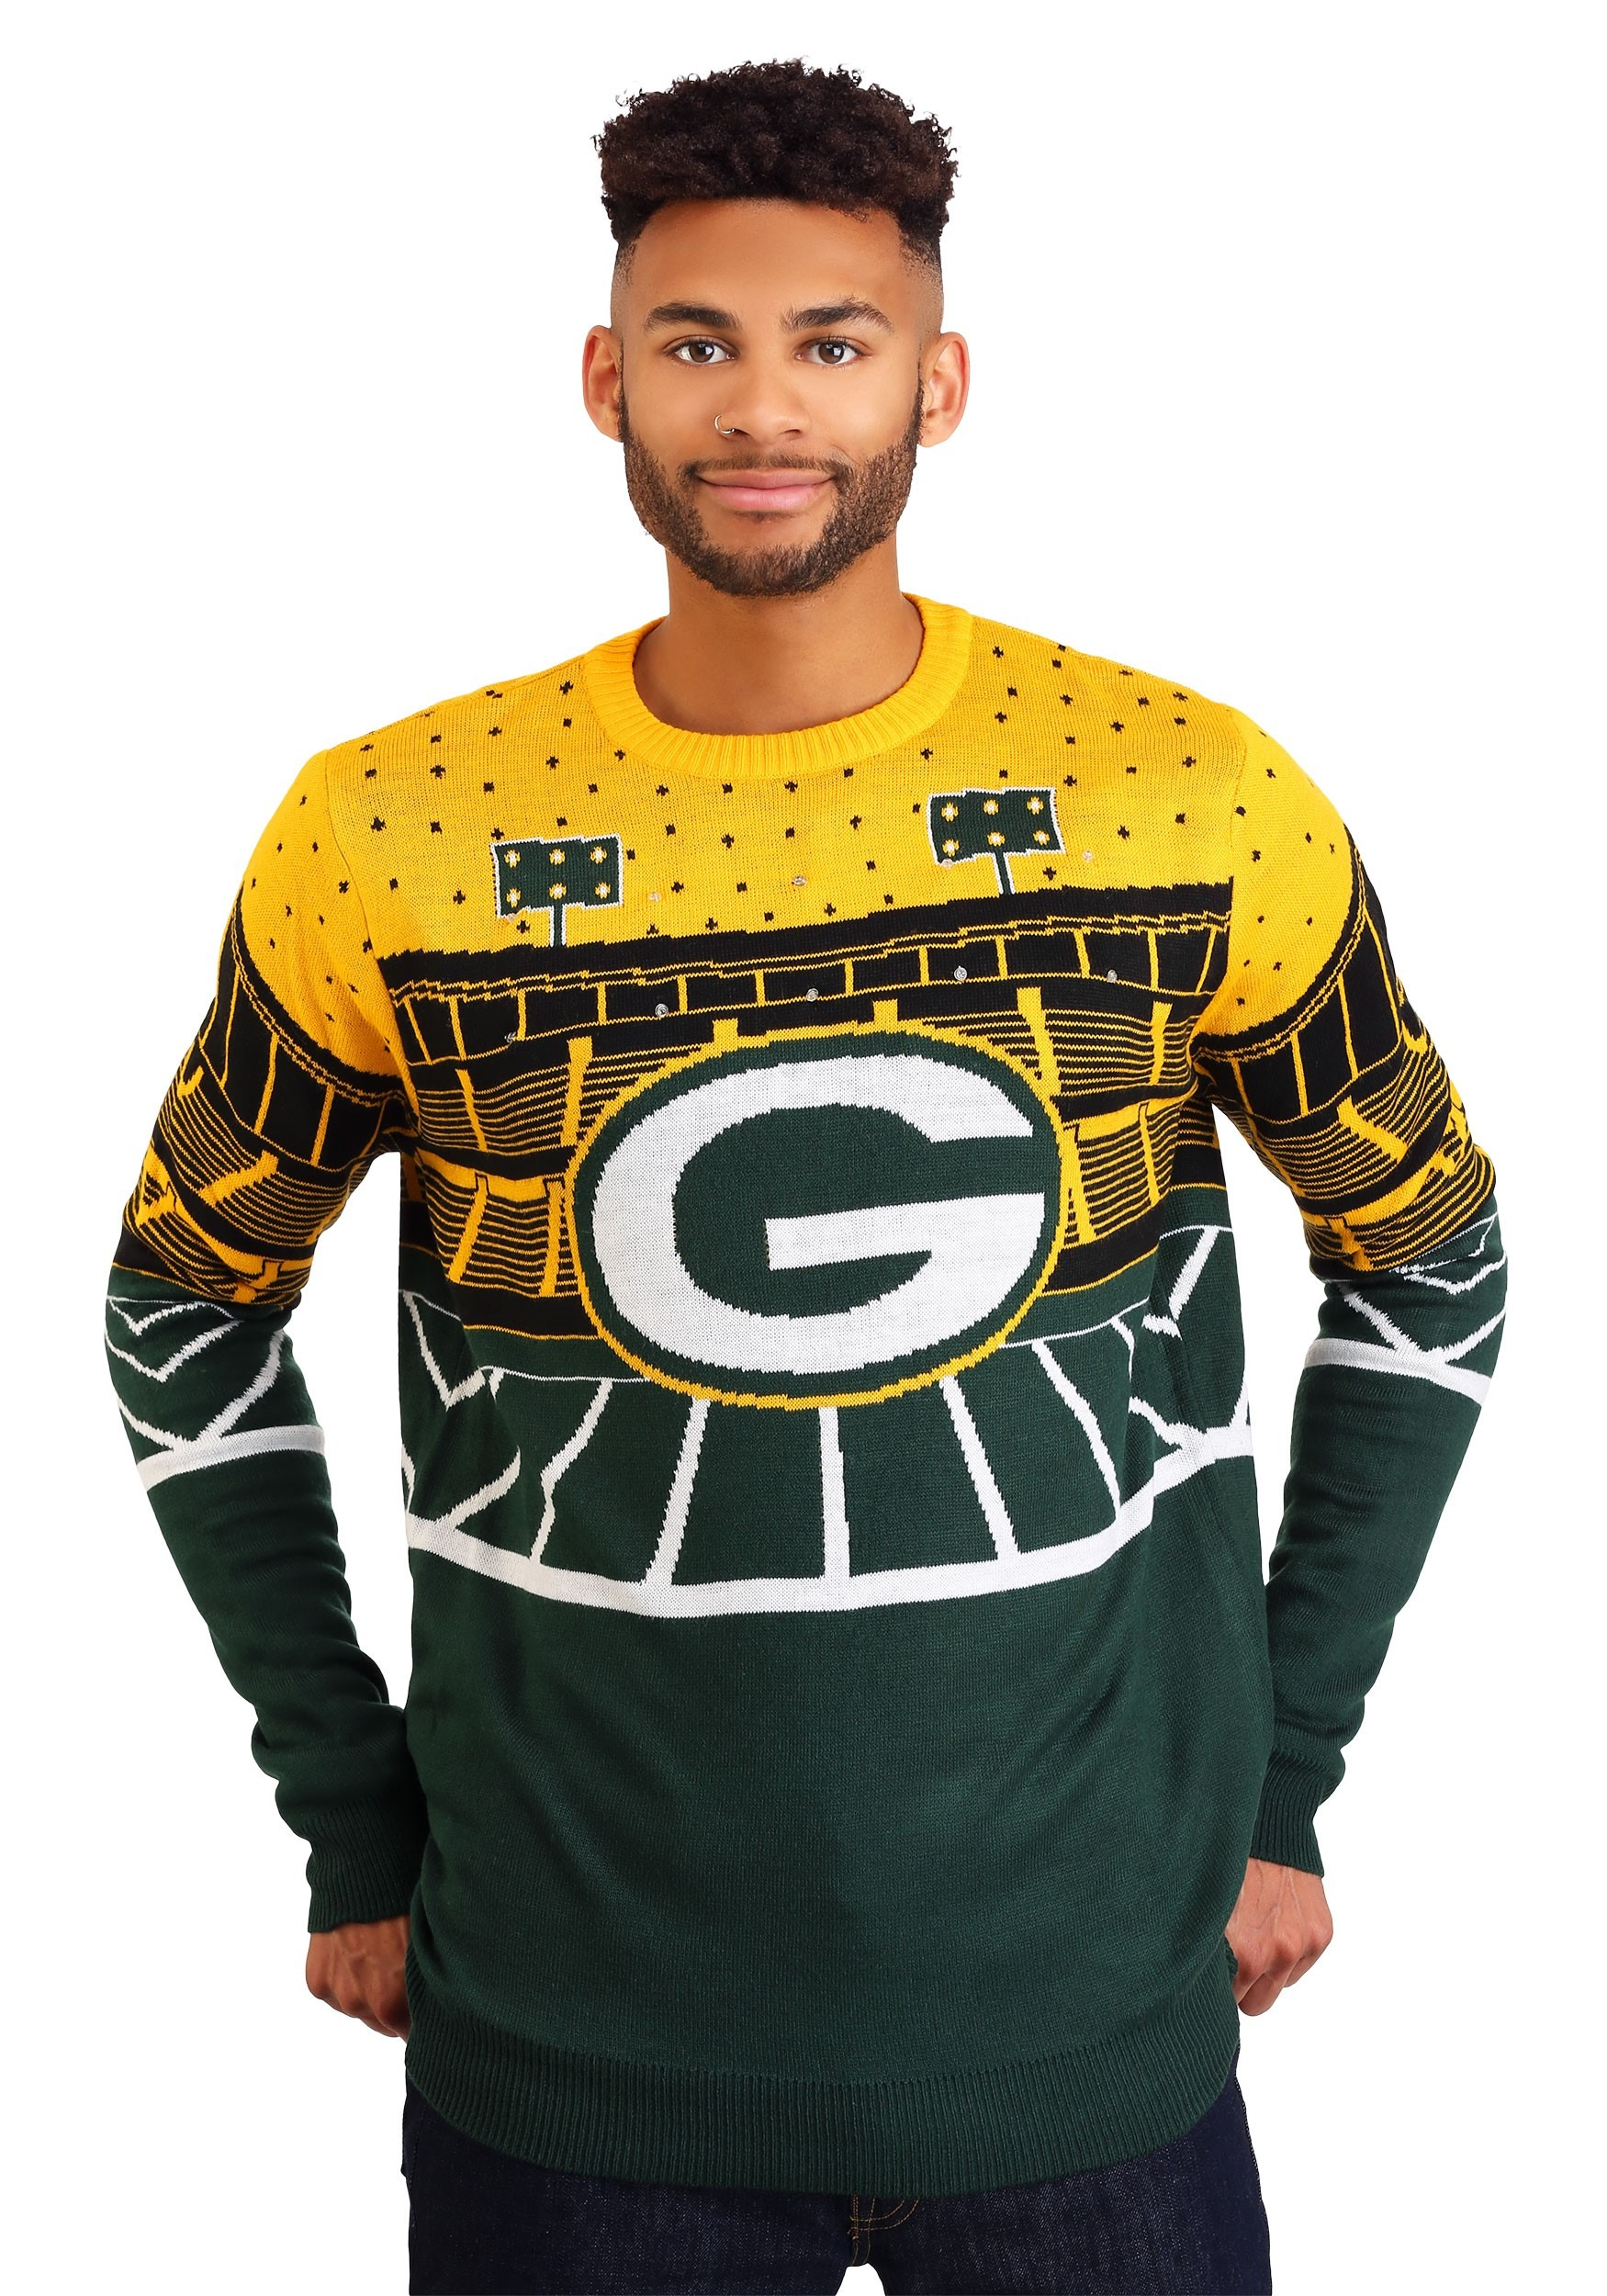 Light Up Christmas Sweater.Green Bay Packers Light Up Bluetooth Ugly Christmas Sweater